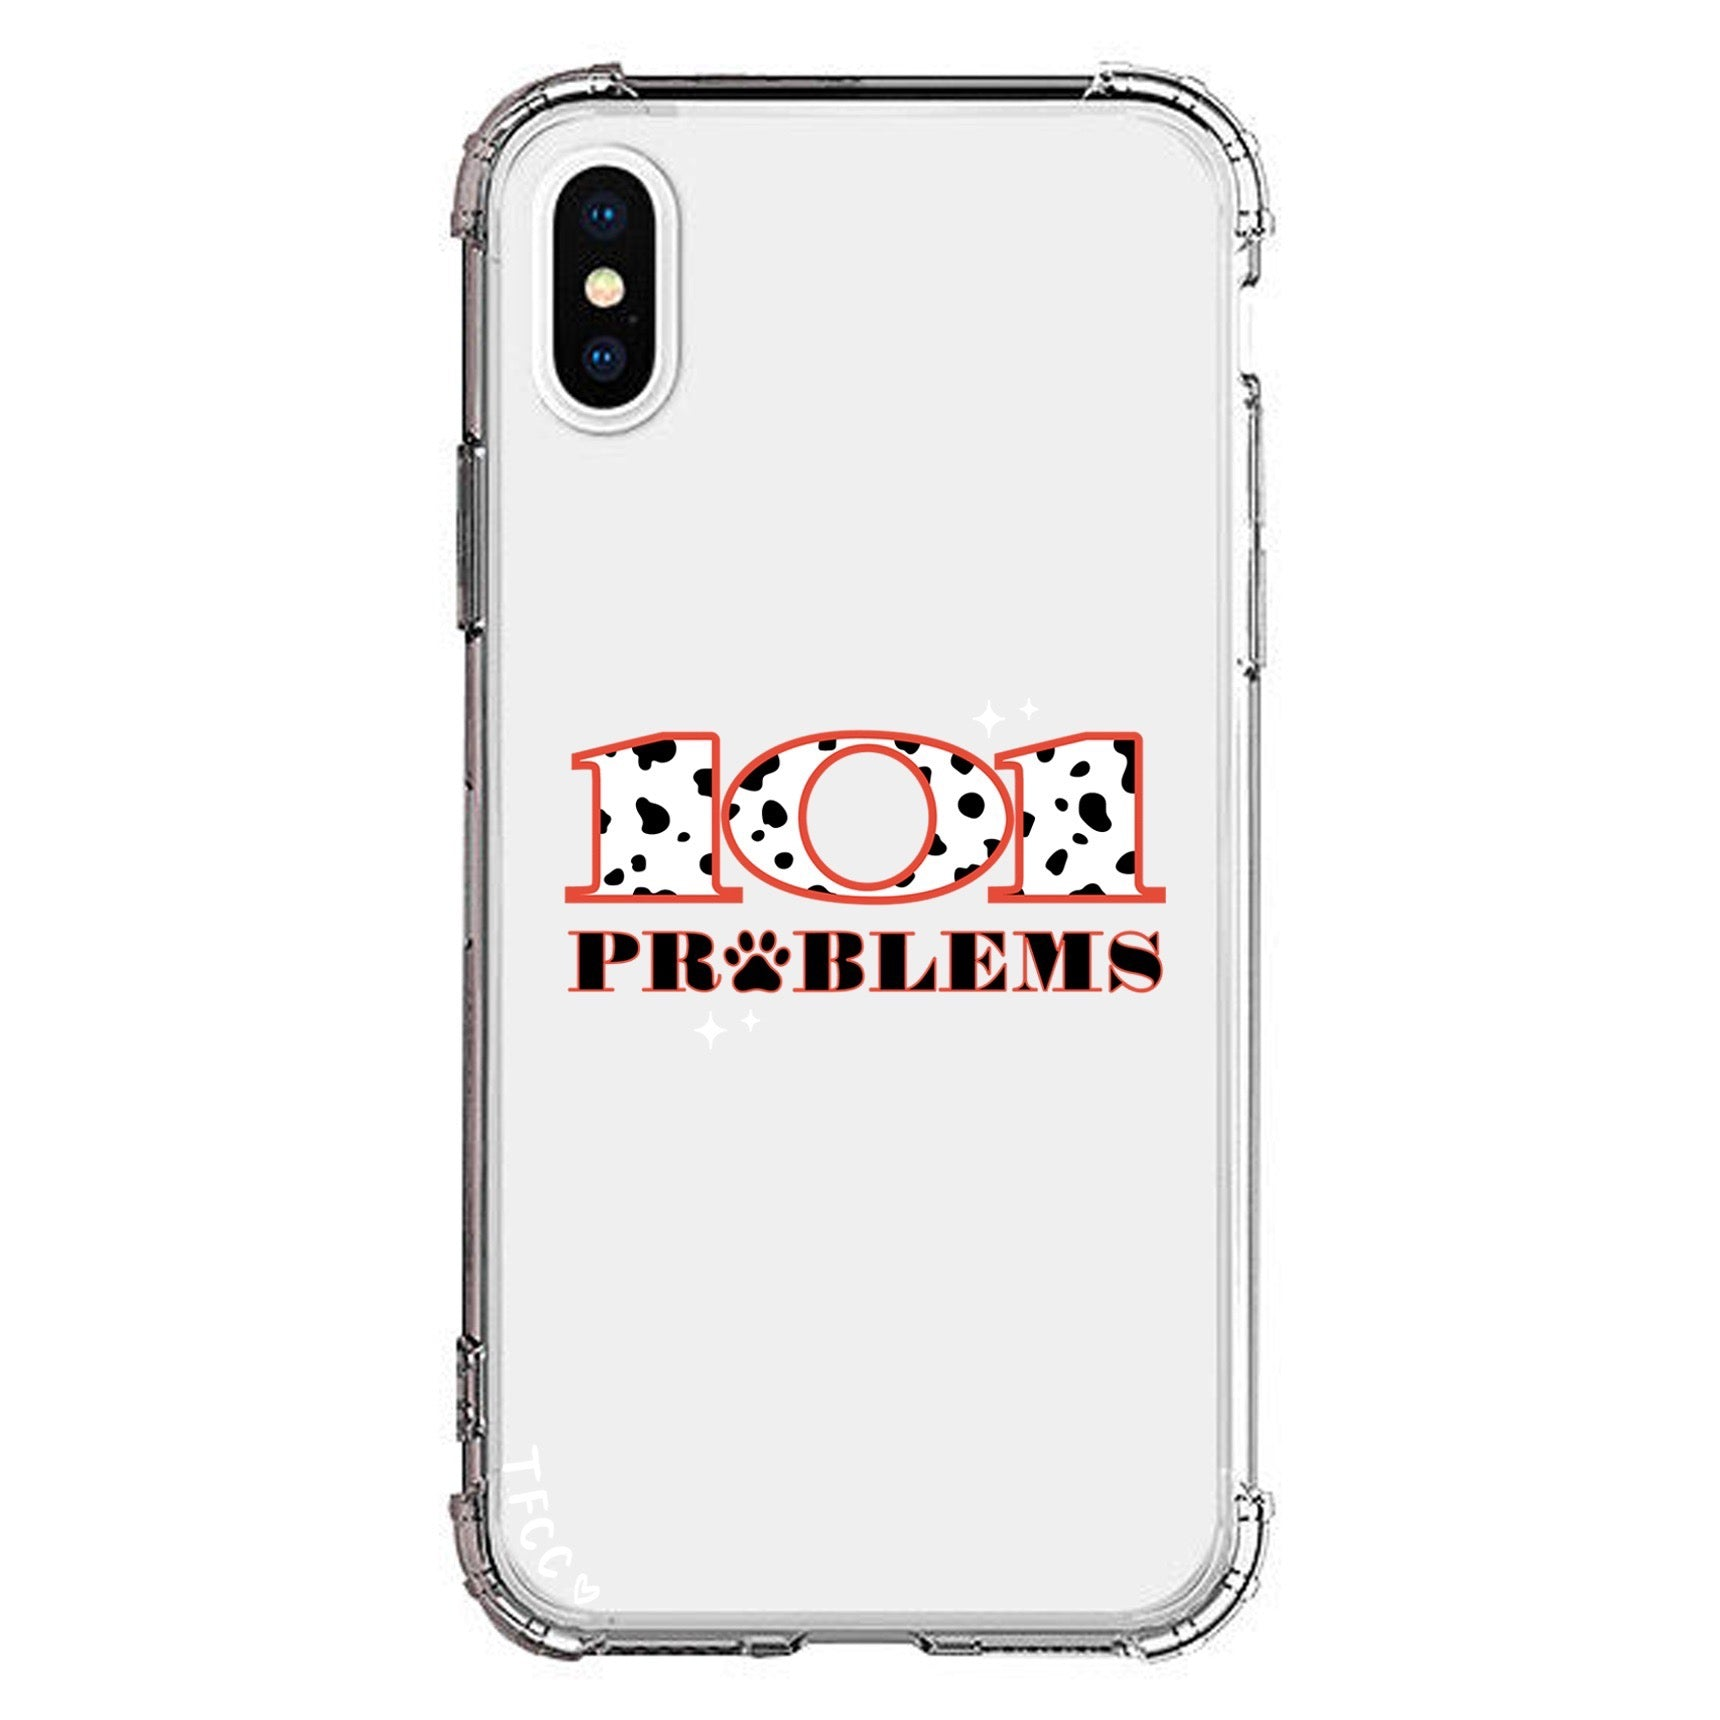 101 PROBLEMS CLEAR CASE - thefonecasecompany